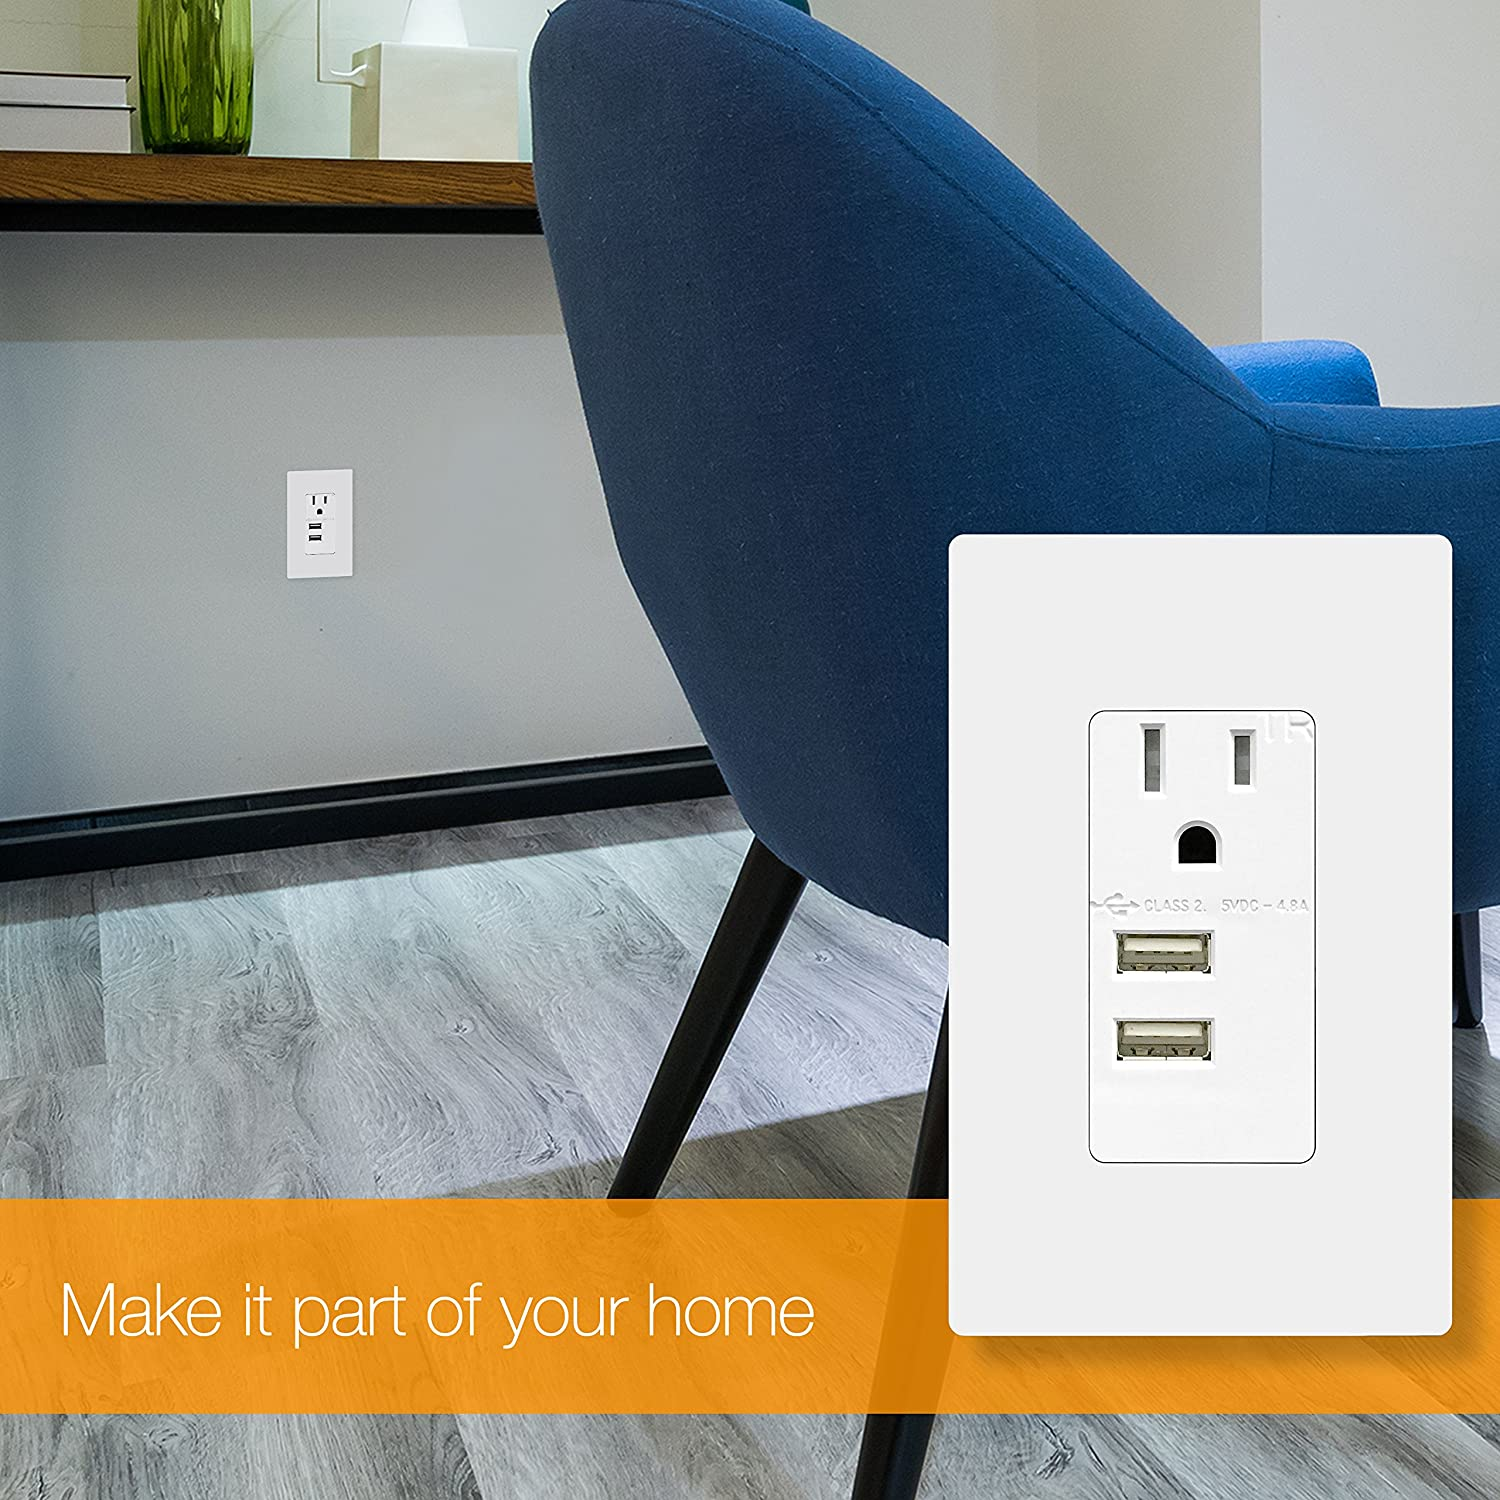 Topgreener Interchangeable Usb Outlet Module For Tu11548a Black Charging Electrical Whitetr7740wk The Home Depot